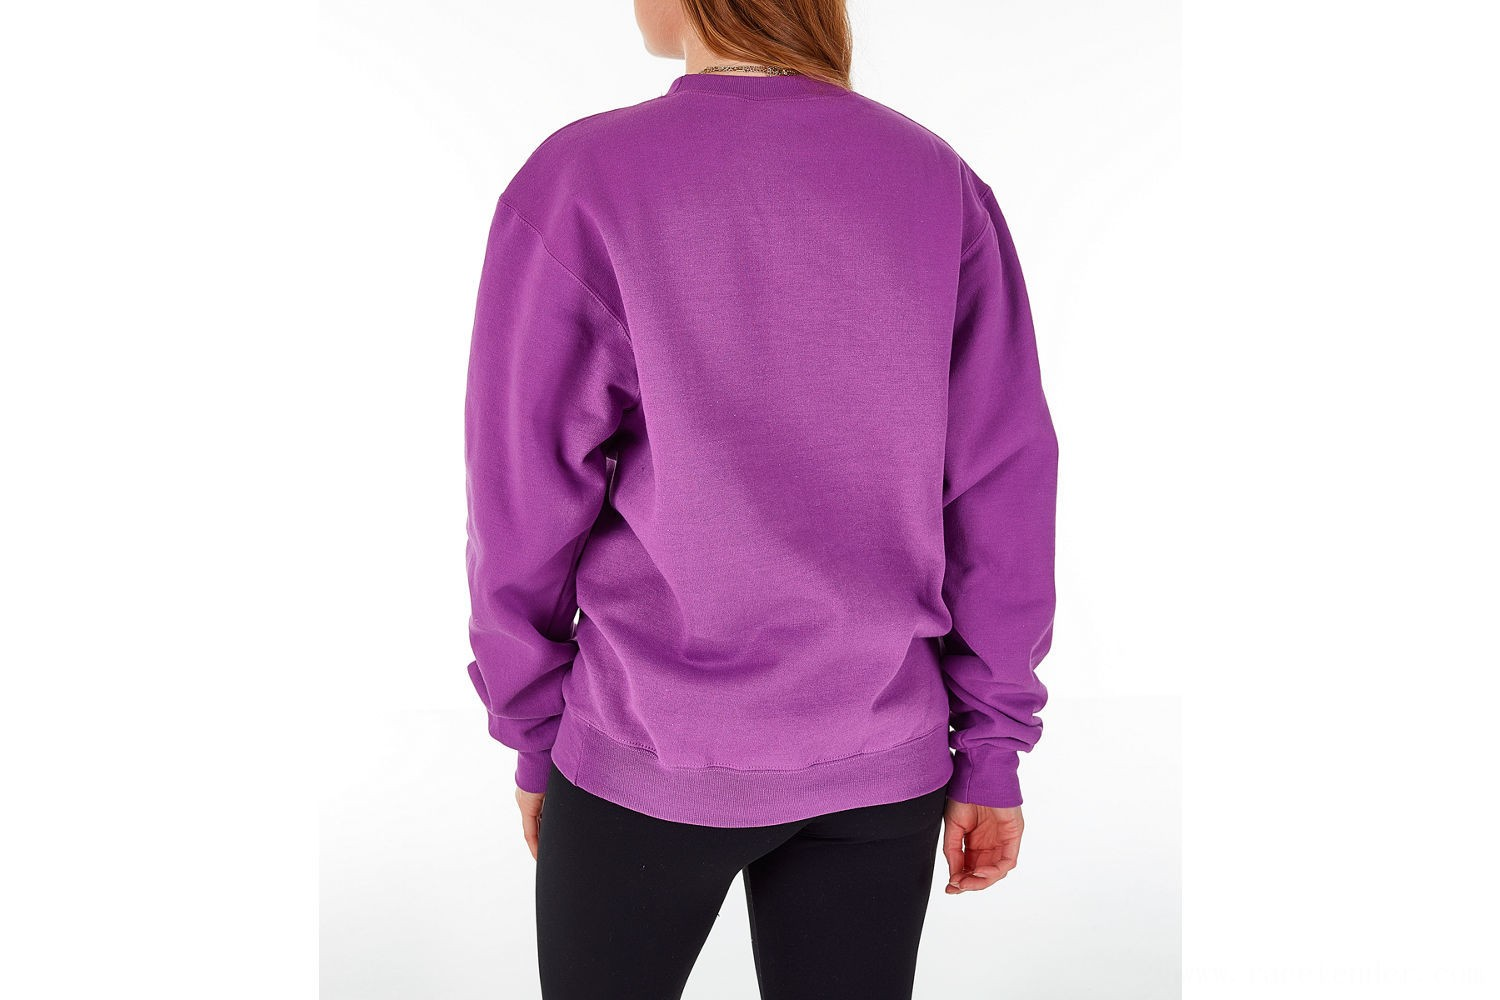 Champion Women's Powerblend Fleece Boyfriend Crew Sweatshirt - Purple